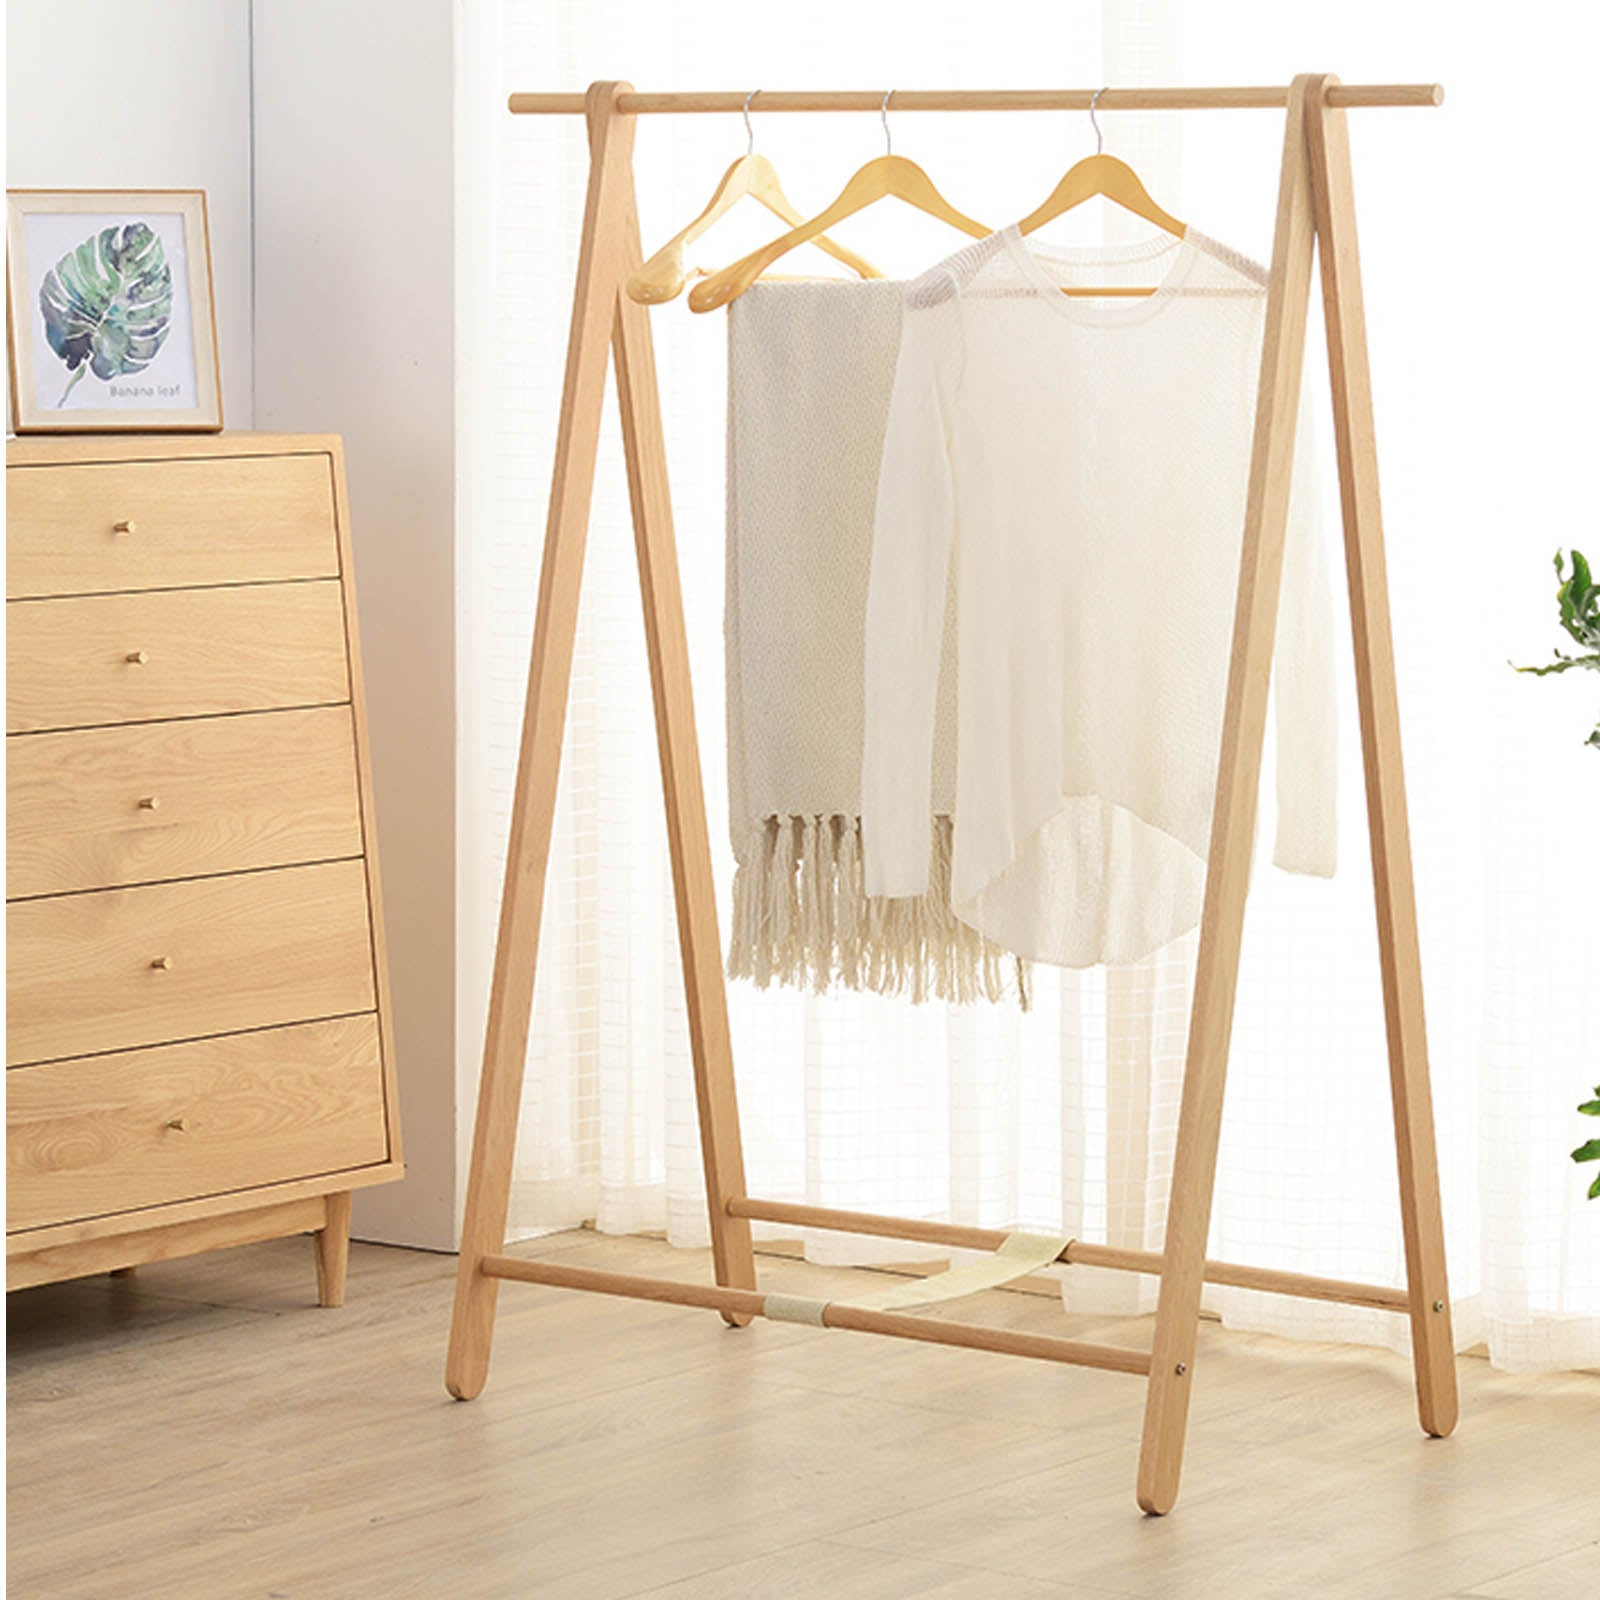 Solid Wood Hanger CH-025-N -  شماعات الخشب الصلب - Shop Online Furniture and Home Decor Store in Dubai, UAE at ebarza